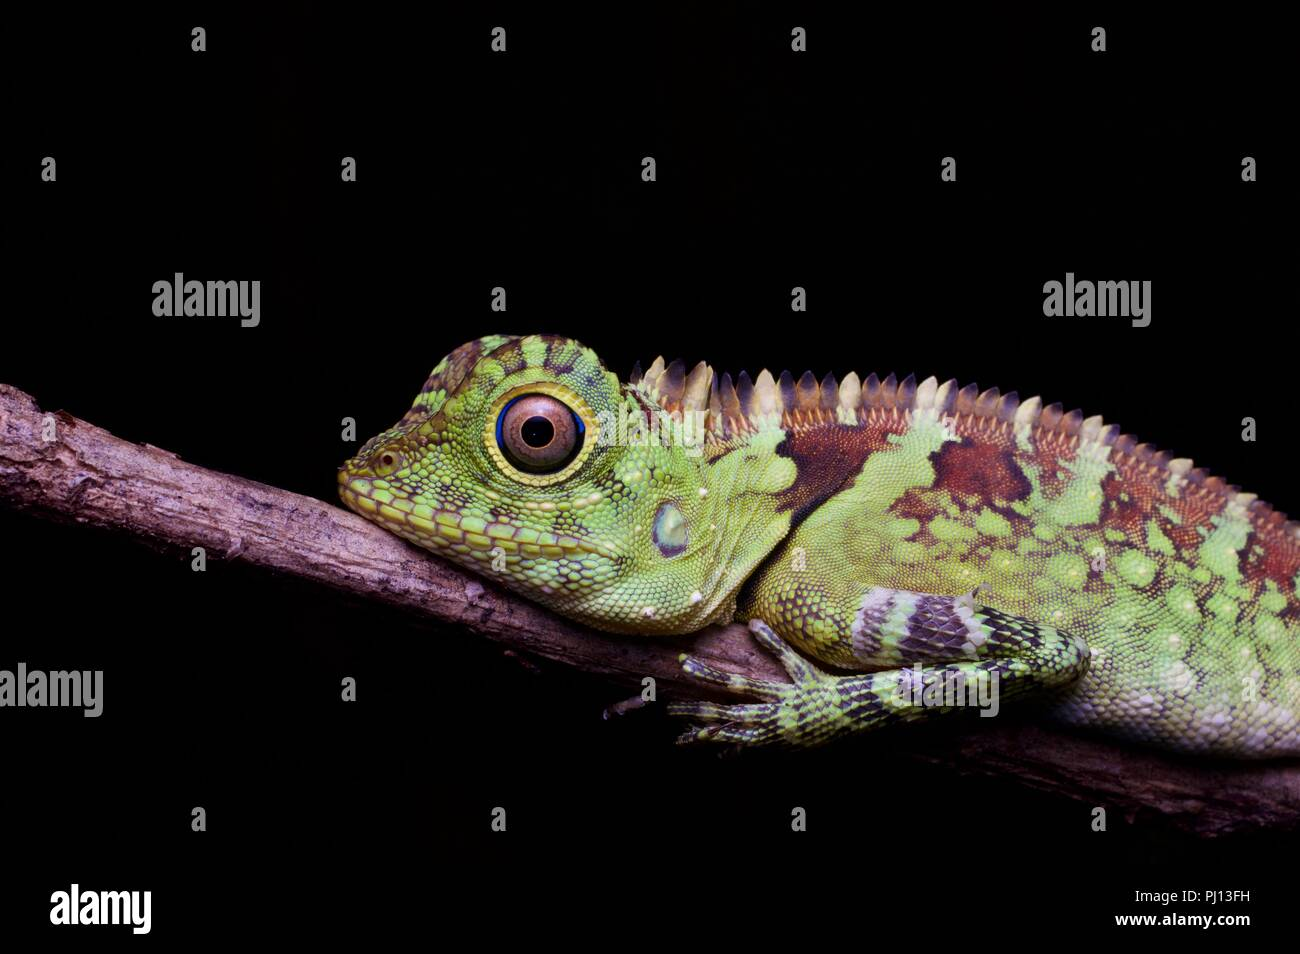 A female Blue-Eyed Forest Lizard (Gonocephalus liogaster) in the forest at night in Kubah National Park, Sarawak, East Malaysia, Borneo - Stock Image